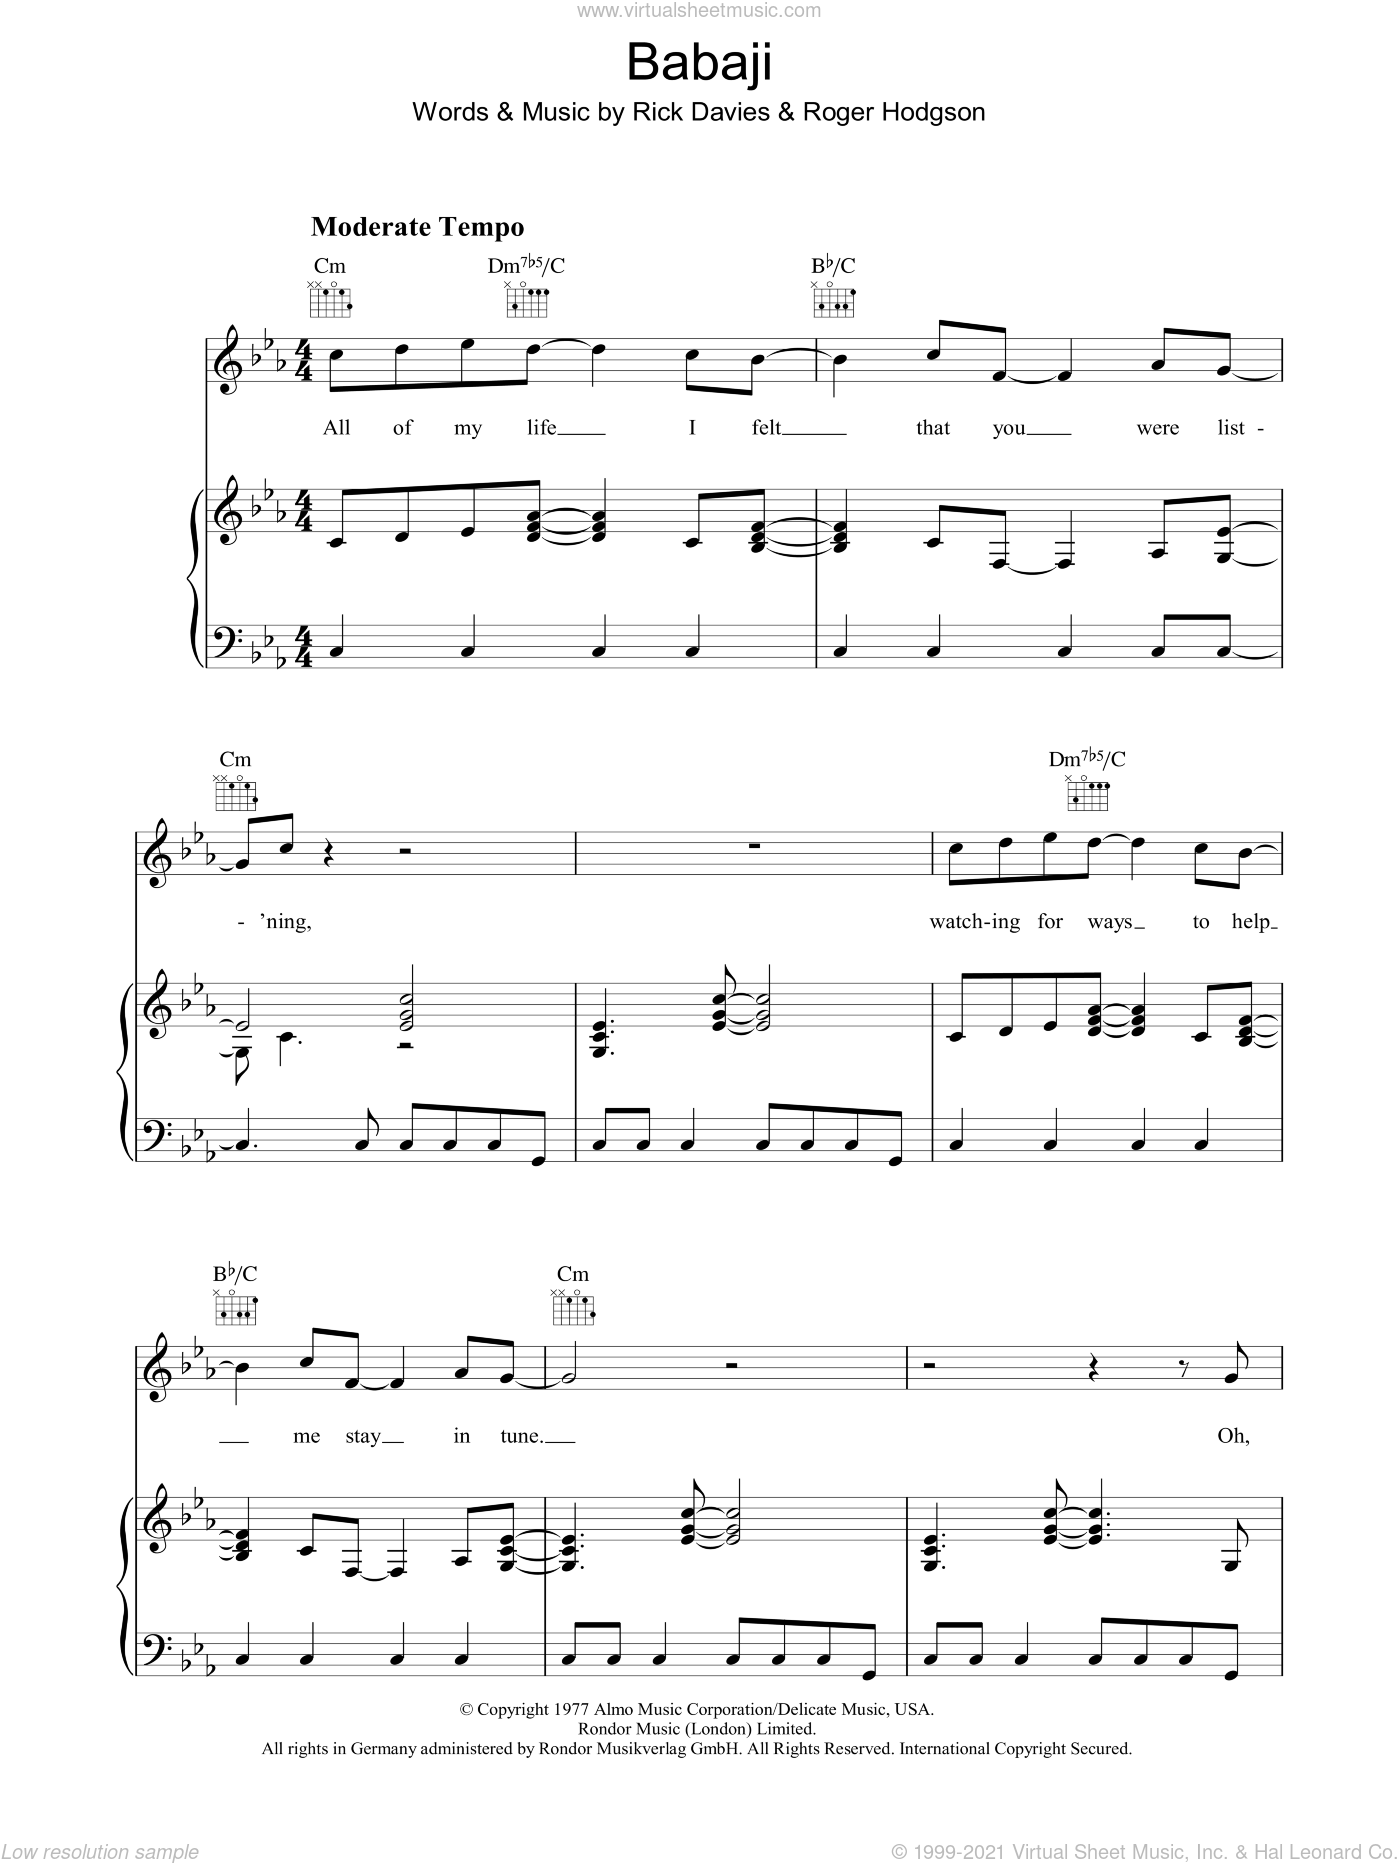 Babaji sheet music for voice, piano or guitar by Roger Hodgson